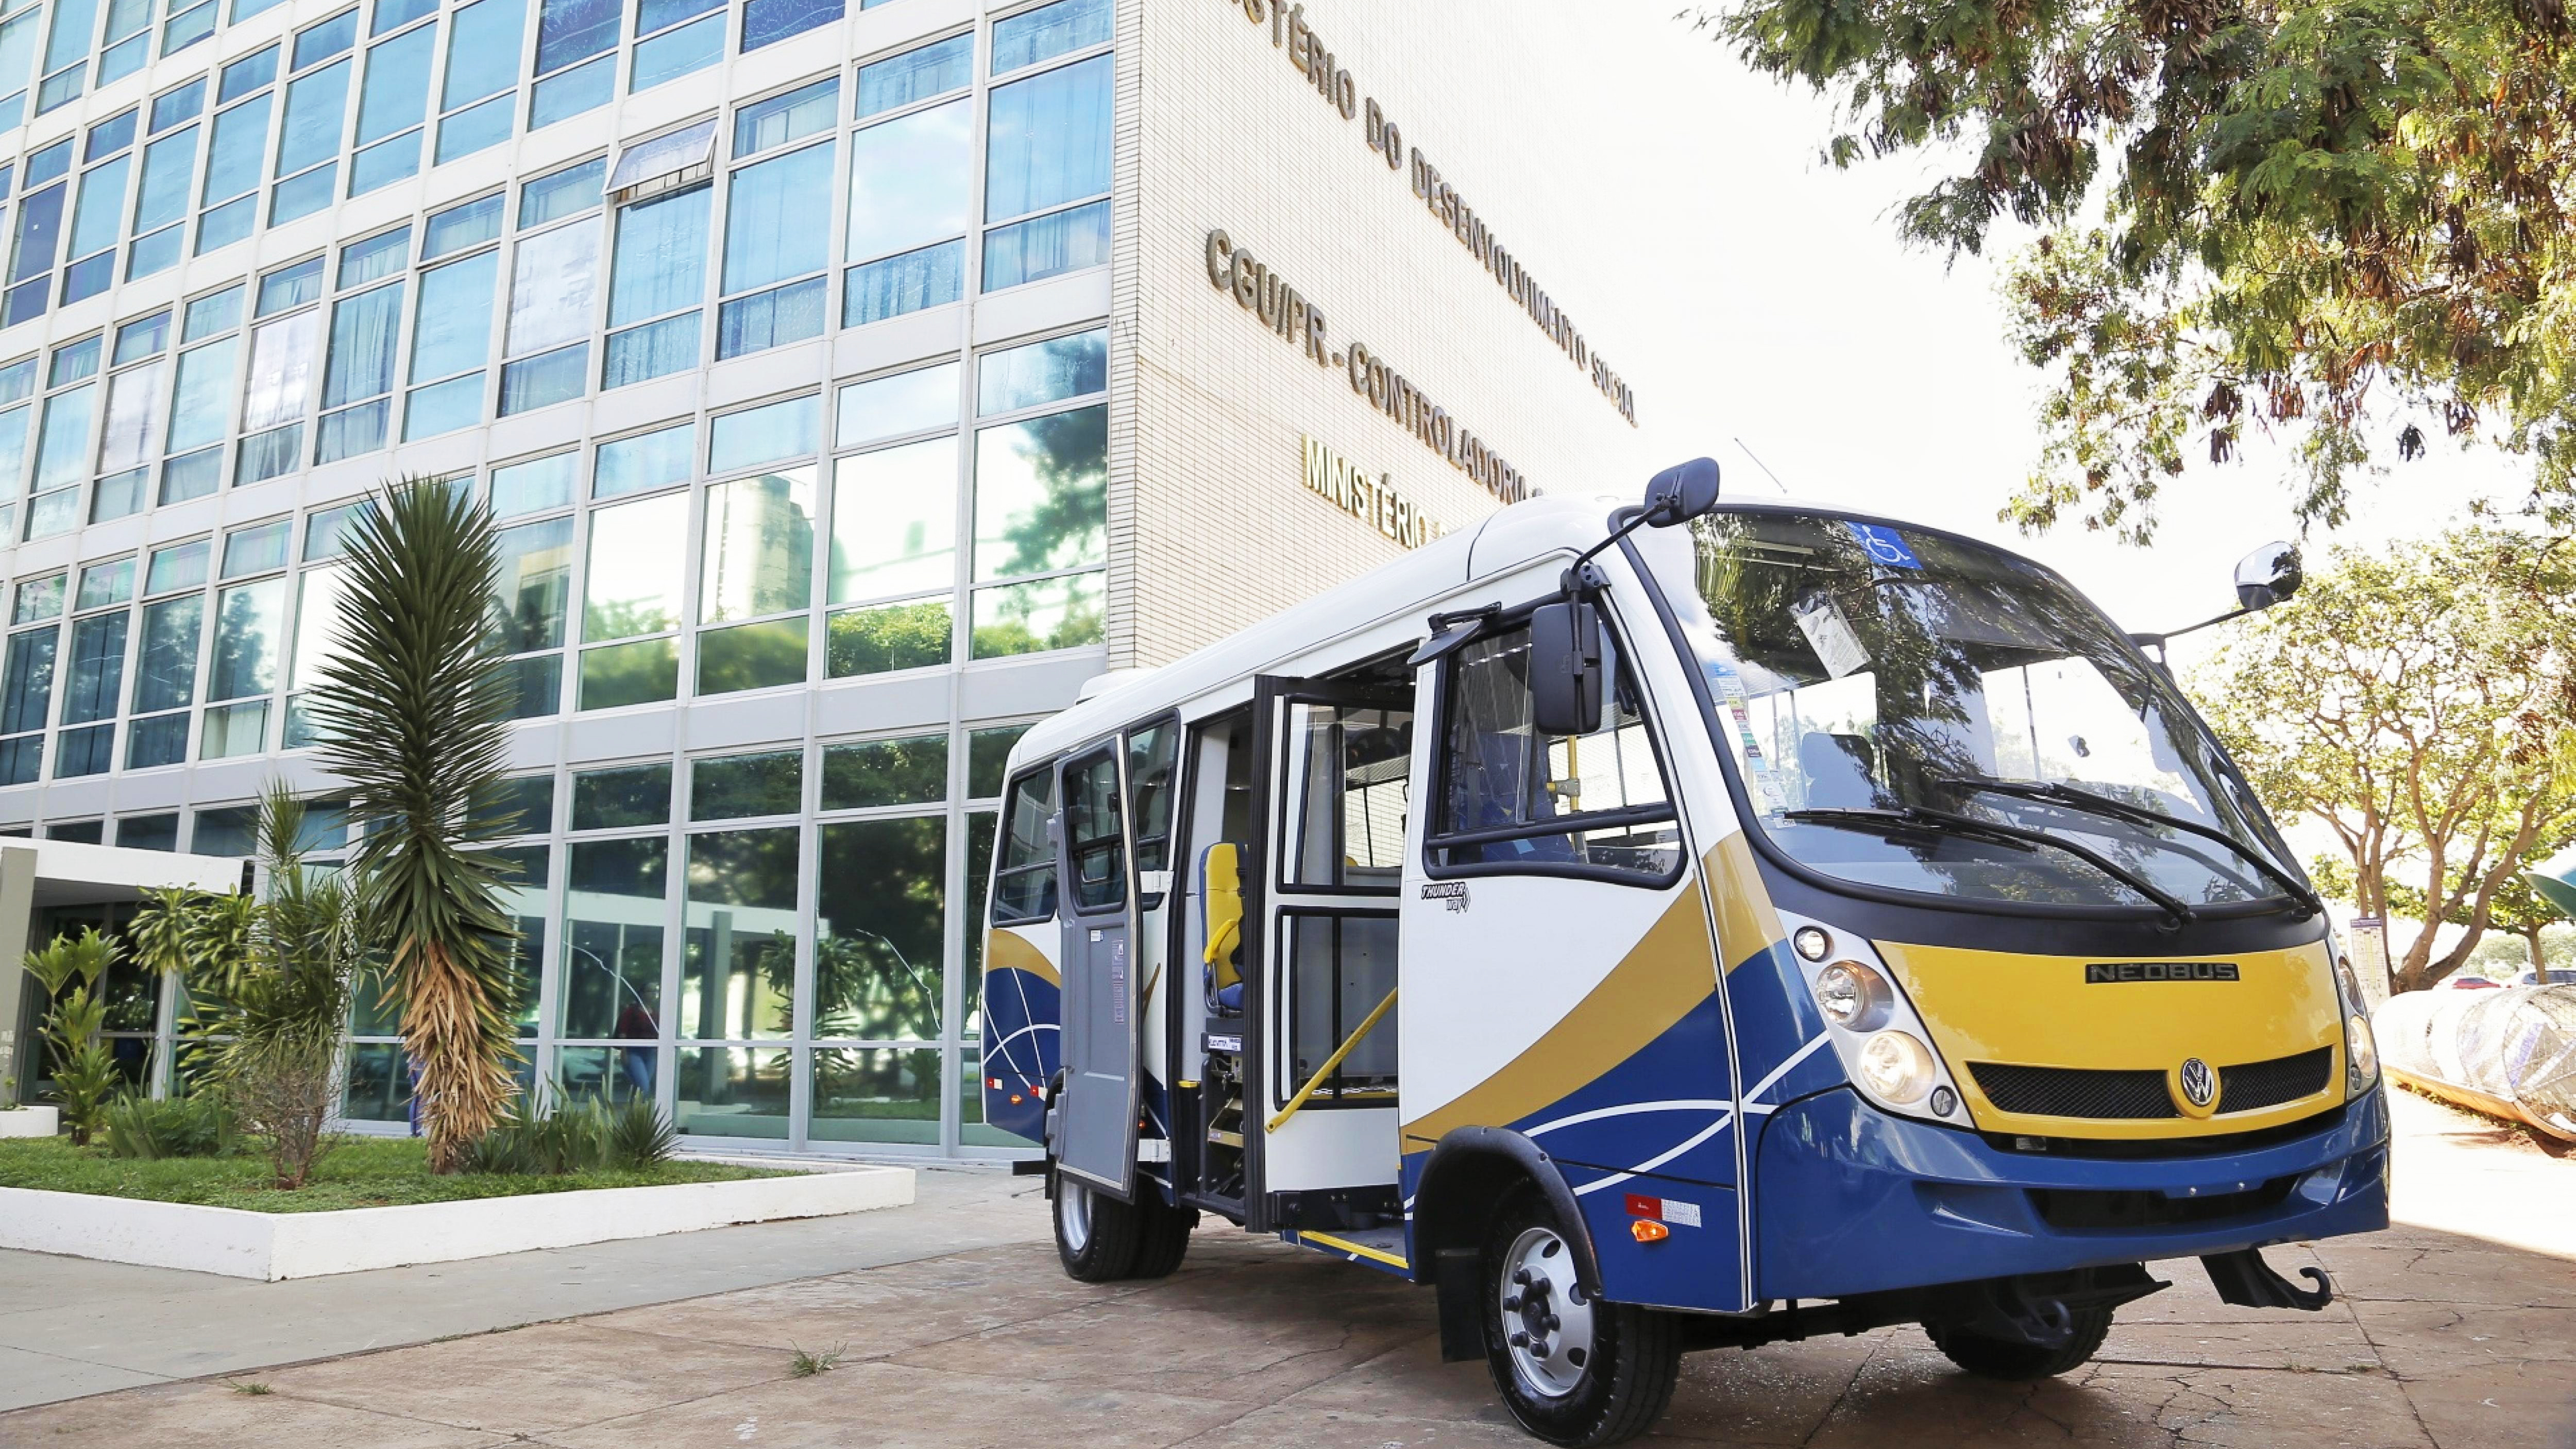 Volkswagen Caminhões e Ônibus will deliver 500 micro-buses to the Brazilian Ministry of Social Development.